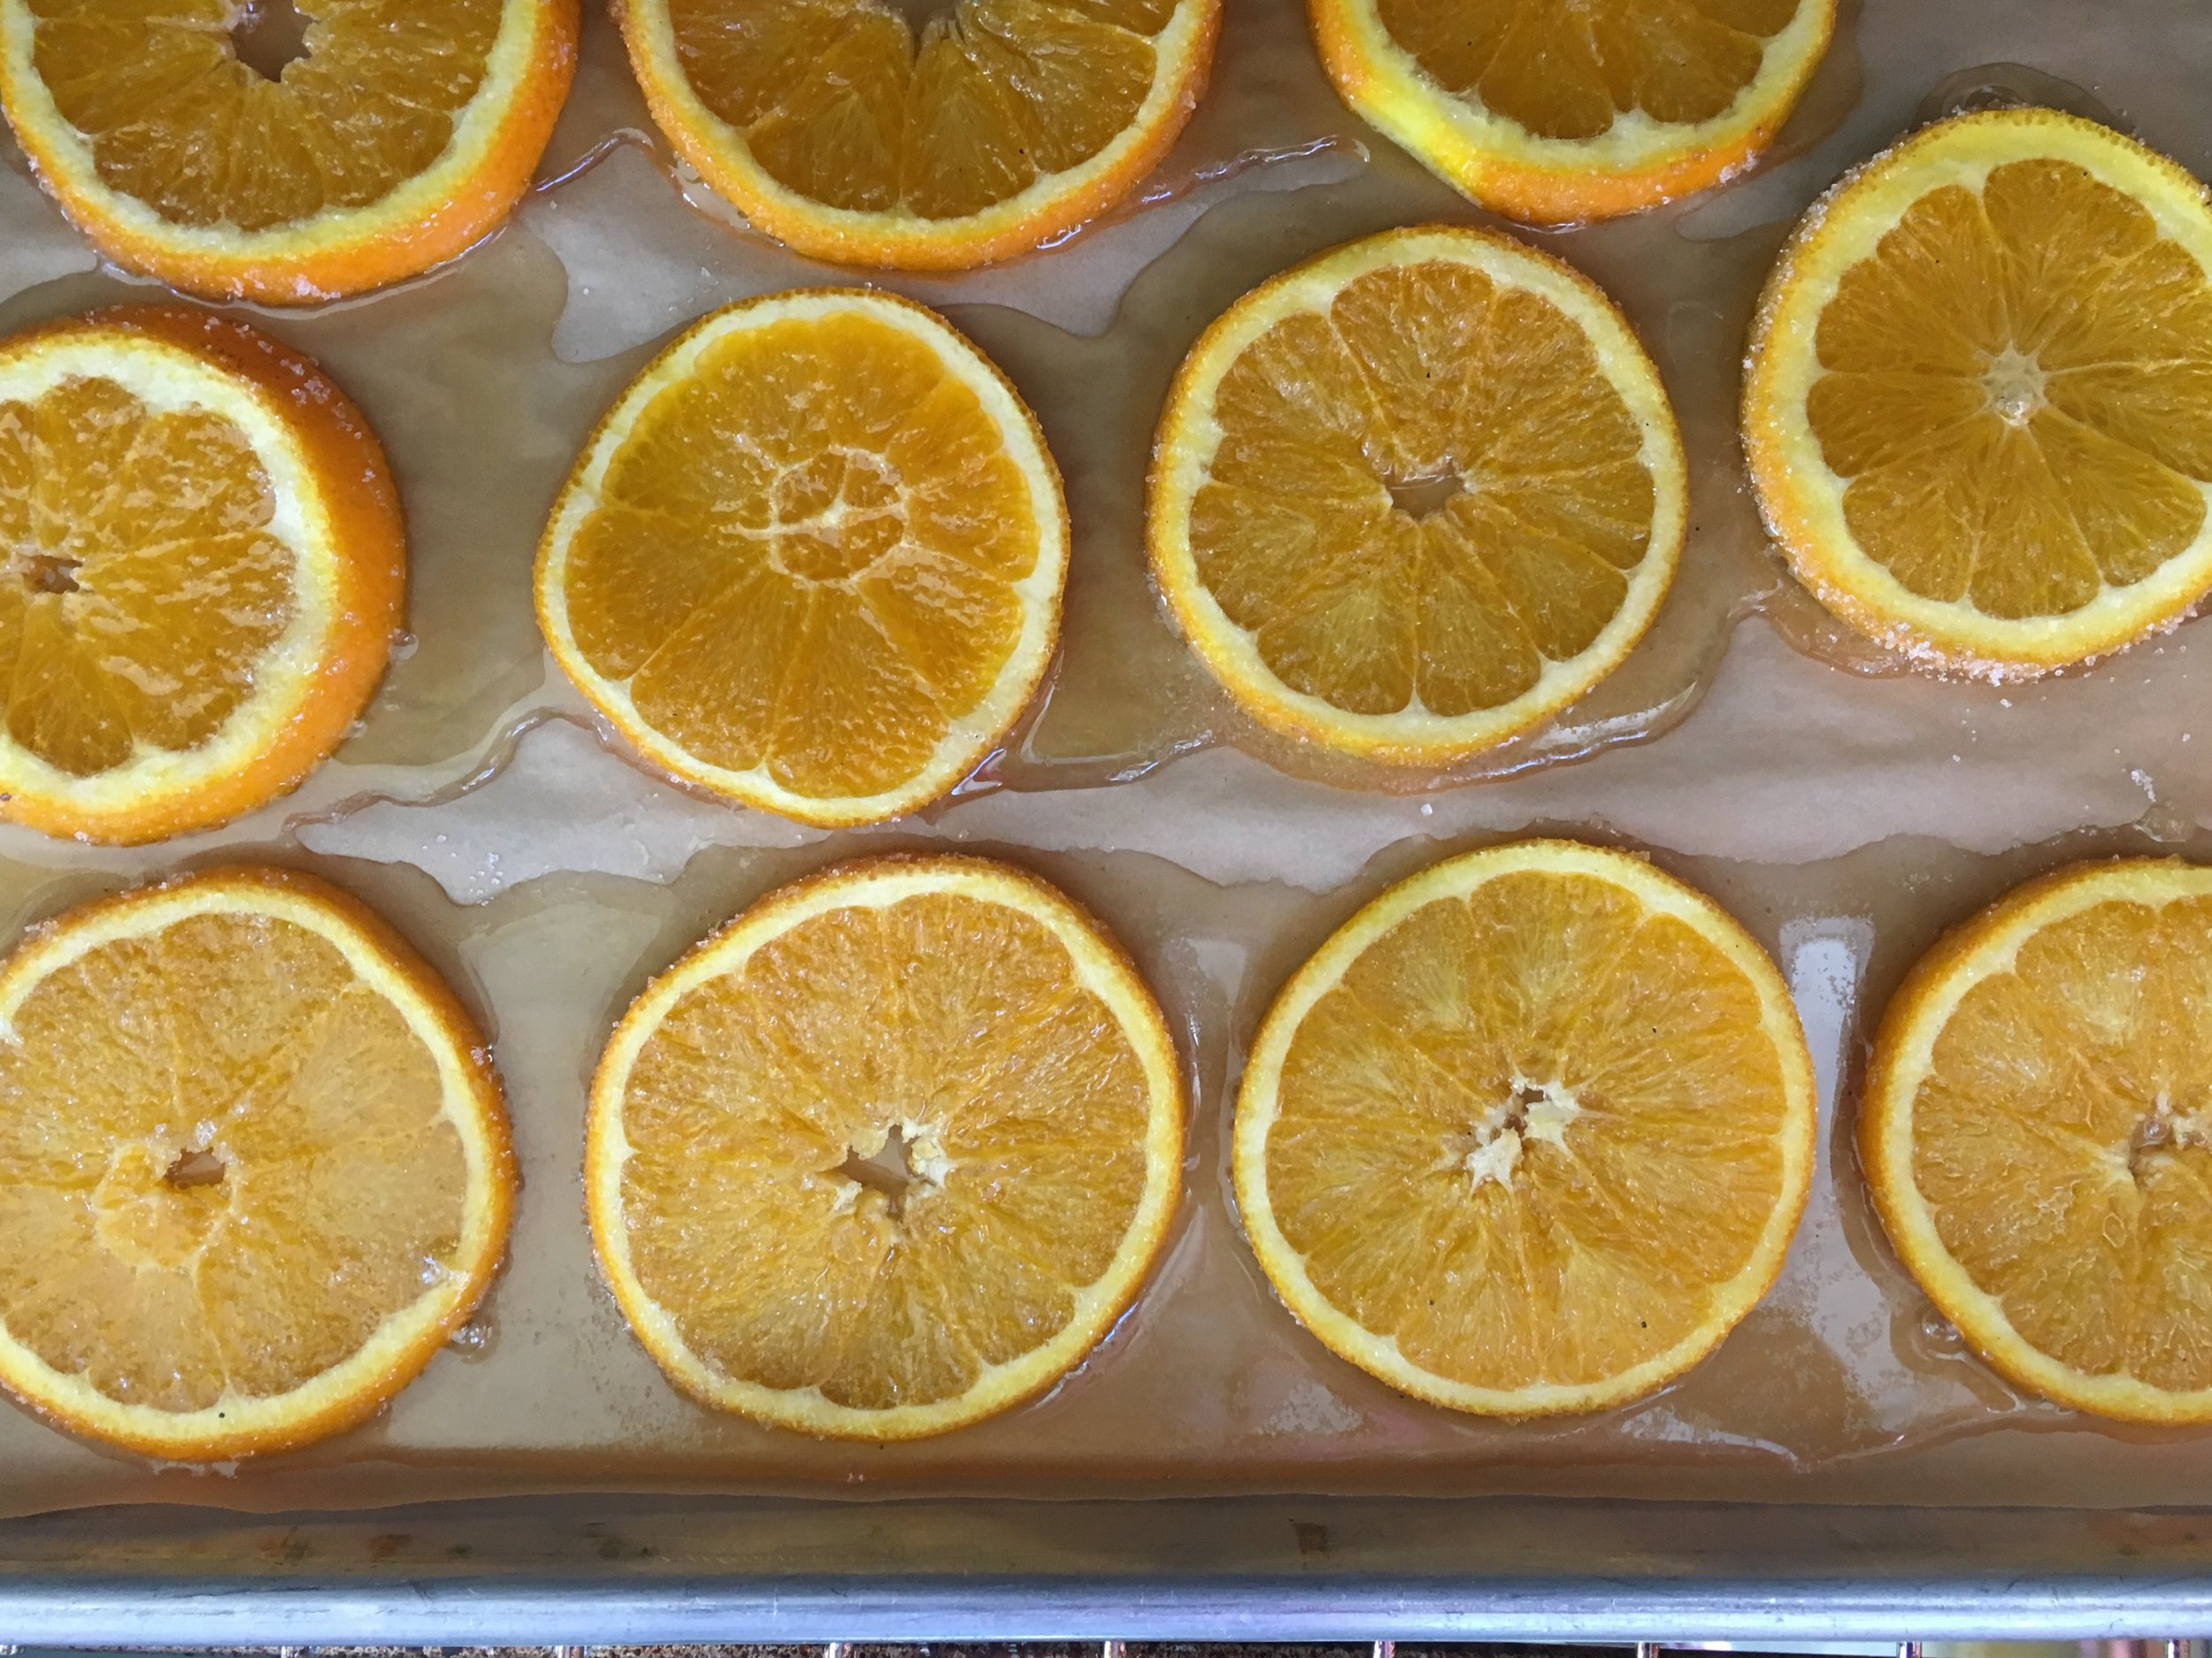 I forgot to take a photo before putting the orange slices in the oven so the orange syrup had formed.